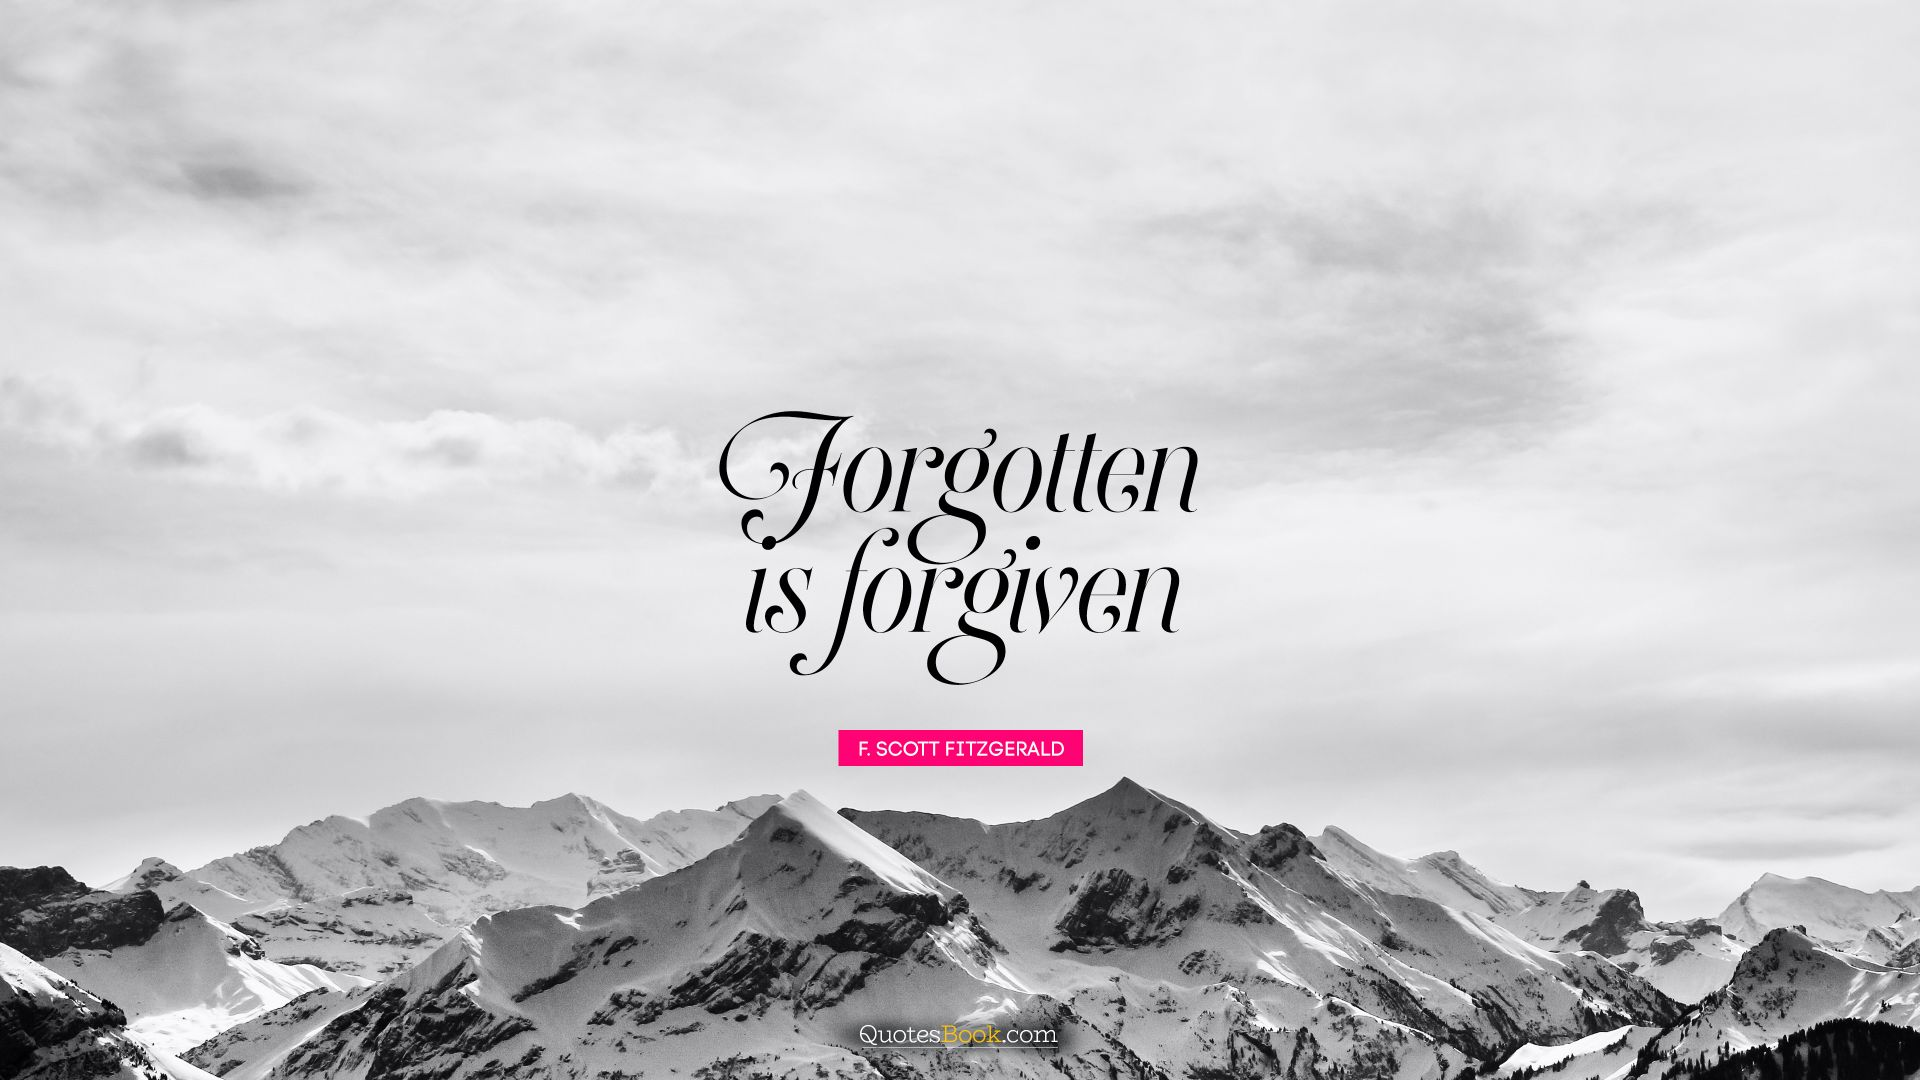 Forgotten is forgiven. - Quote by F. Scott Fitzgerald